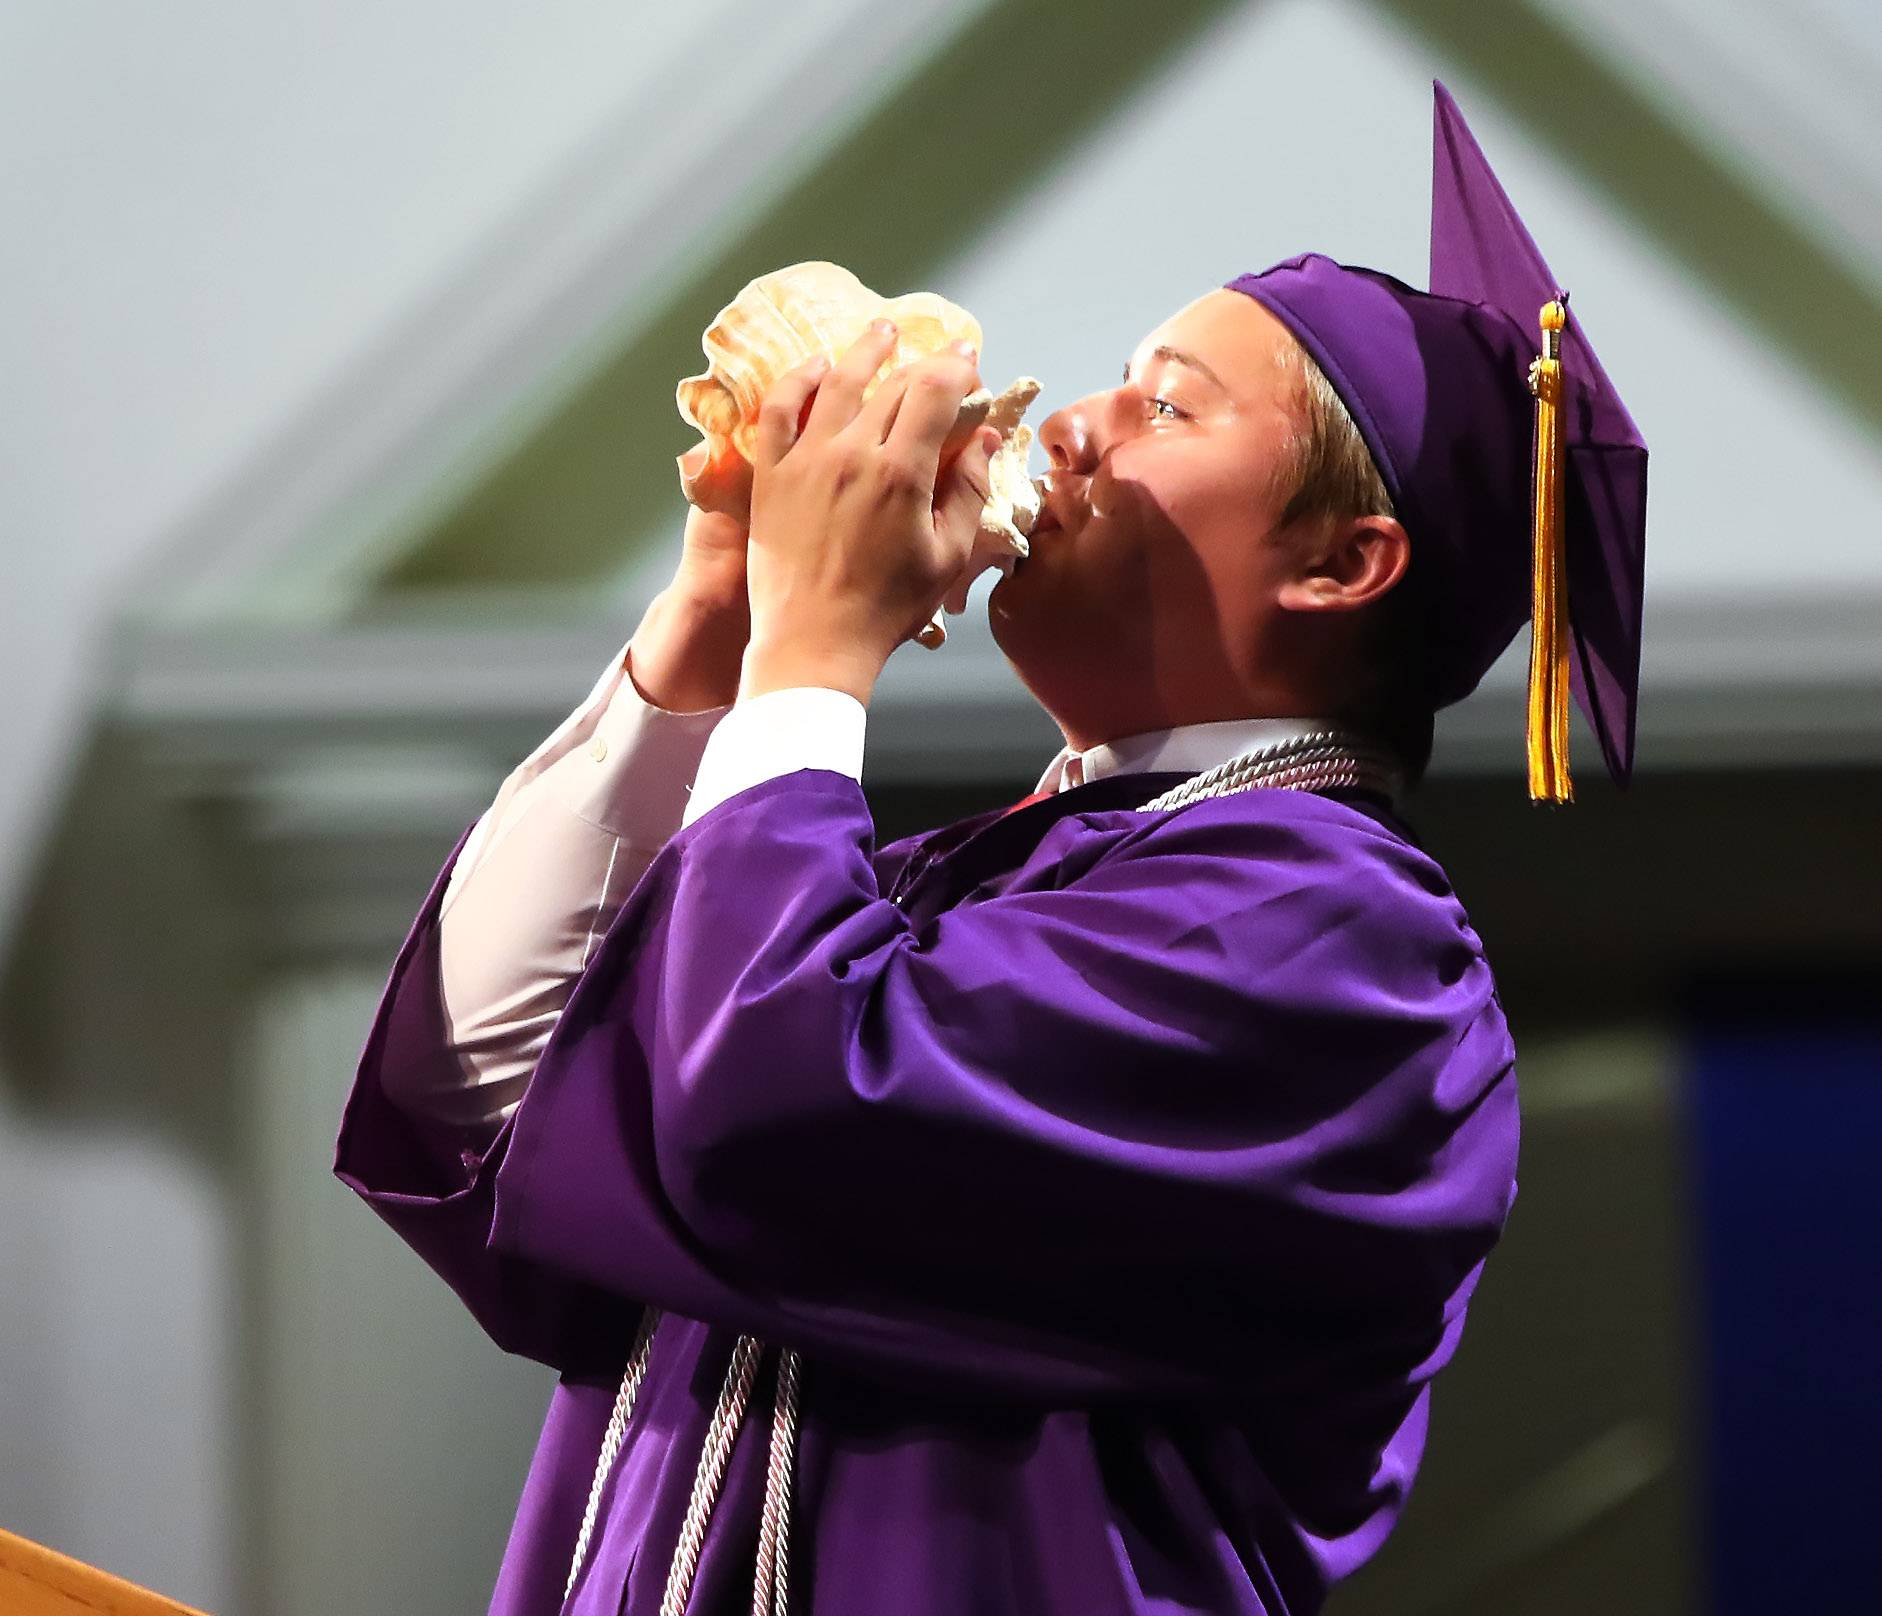 Class representative John Farwick blows into a conch shell after his speech during the Wauconda High School graduation ceremony on Sunday at Quentin Road Bible Church in Lake Zurich. There were 359 graduates during the 100th annual commencement ceremony.